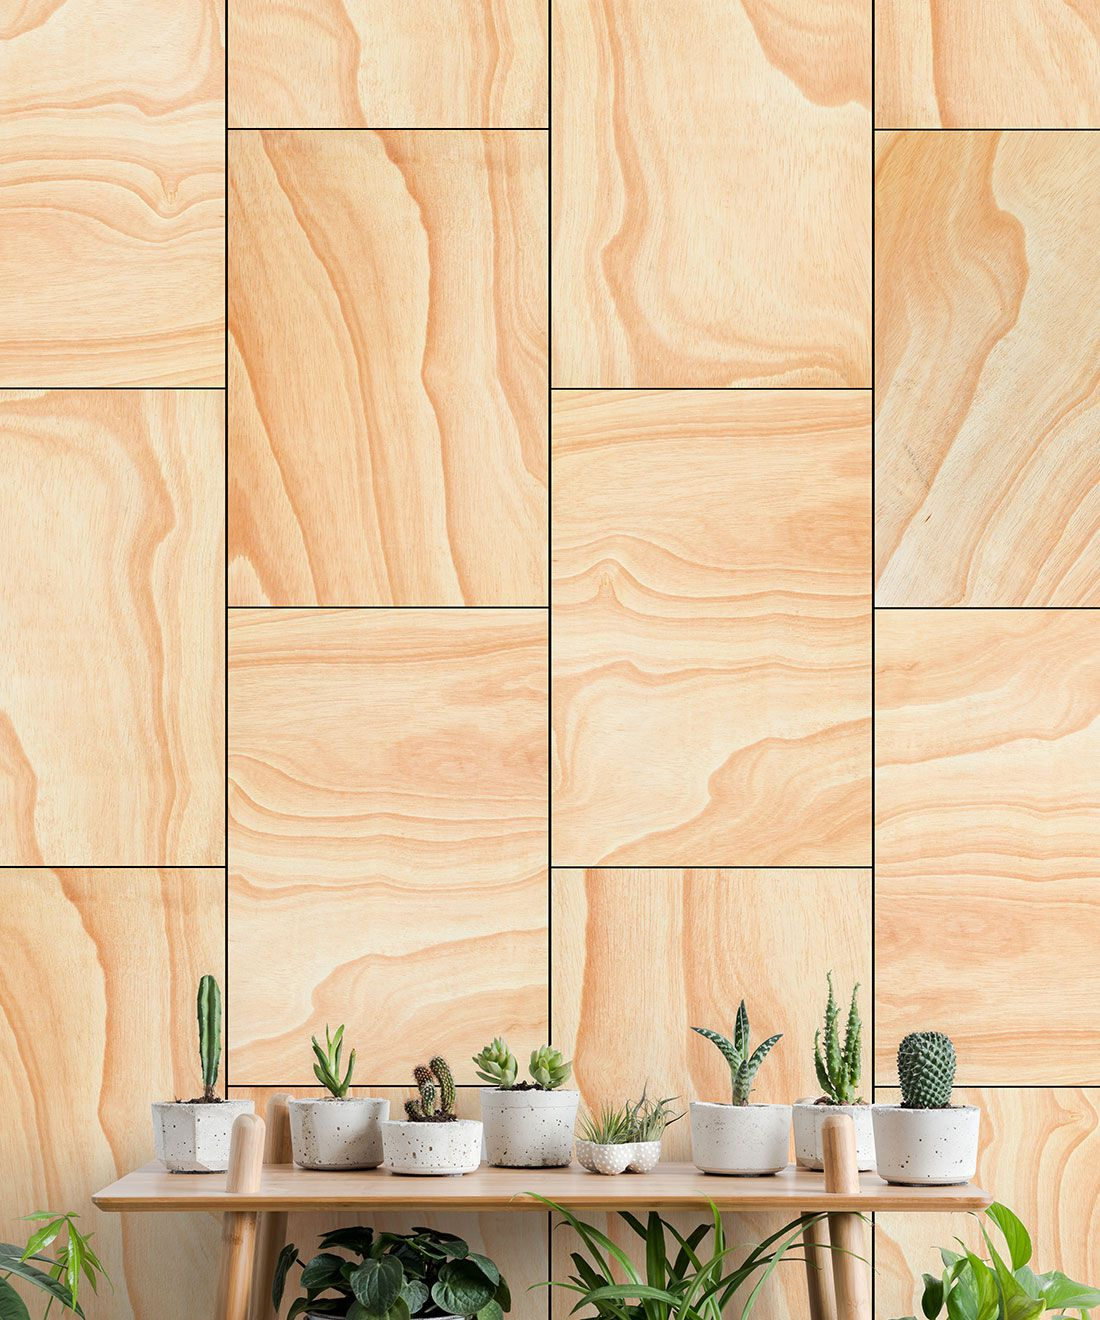 Ply Wood Wallpaper • Light Brown Wallpaper •Wood Grain Wallpaper insitu with a table and on top of the table is a row of small succulents